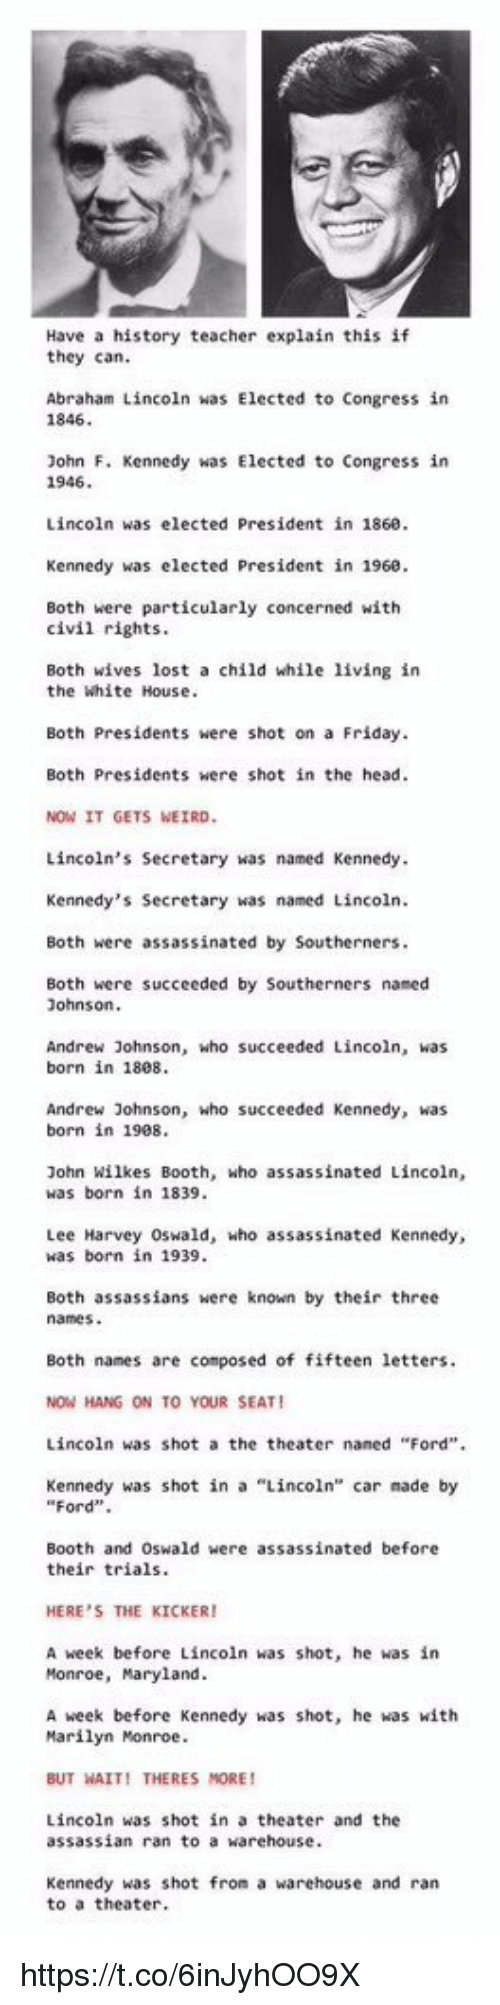 """Lee Harvey Oswald: Have a history teacher explain this if  they can.  Abraham Lincoln was Elected to Congress in  1846  John F. Kennedy was Elected to Congress in  1946  Lincoln was elected President in 1860  Kennedy was elected President in 1960  Both were particularly c  with  civil rights.  Both wives lost a child while living in  the White House  Both Presidents were shot on a Friday.  Both Presidents were shot in the head.  NOW IT GETS WEIRD  Lincoln's Secretary was named Kennedy.  Kennedy's Secretary was named Lincoln.  Both were assassinated by Southerners.  Both were succeeded by Southerners named  Johnson.  Andrew Johnson, who succeeded Lincoln  born in 1808.  Andrew Johnson, who succeeded Kennedy, was  born in 1908  John Wilkes Booth, who assassinated Lincoln,  was born in 1839  Lee Harvey Oswald, who assassinated Kennedy,  was born in 1939.  Both assassians were known by their three  names  Both names are composed of fifteen letters.  NON HANG ON TO YOUR SEAT  Lincoln was shot a the theater named """"Ford"""".  Kennedy was shot in a """"Lincoln"""" car made by  Ford  Booth and Oswald were assassinated before  their trials  HERE'S THE KICKER!  A week before Lincoln was shot, he was in  Monroe, Maryland.  A week before Kennedy was shot, he was with  Marilyn Monroe.  BUT WAIT! THERES MORE  Lincoln was shot in a theater and the  assassian ran to a warehouse  Kennedy was shot from a warehouse and ran  to a theater https://t.co/6inJyhOO9X"""